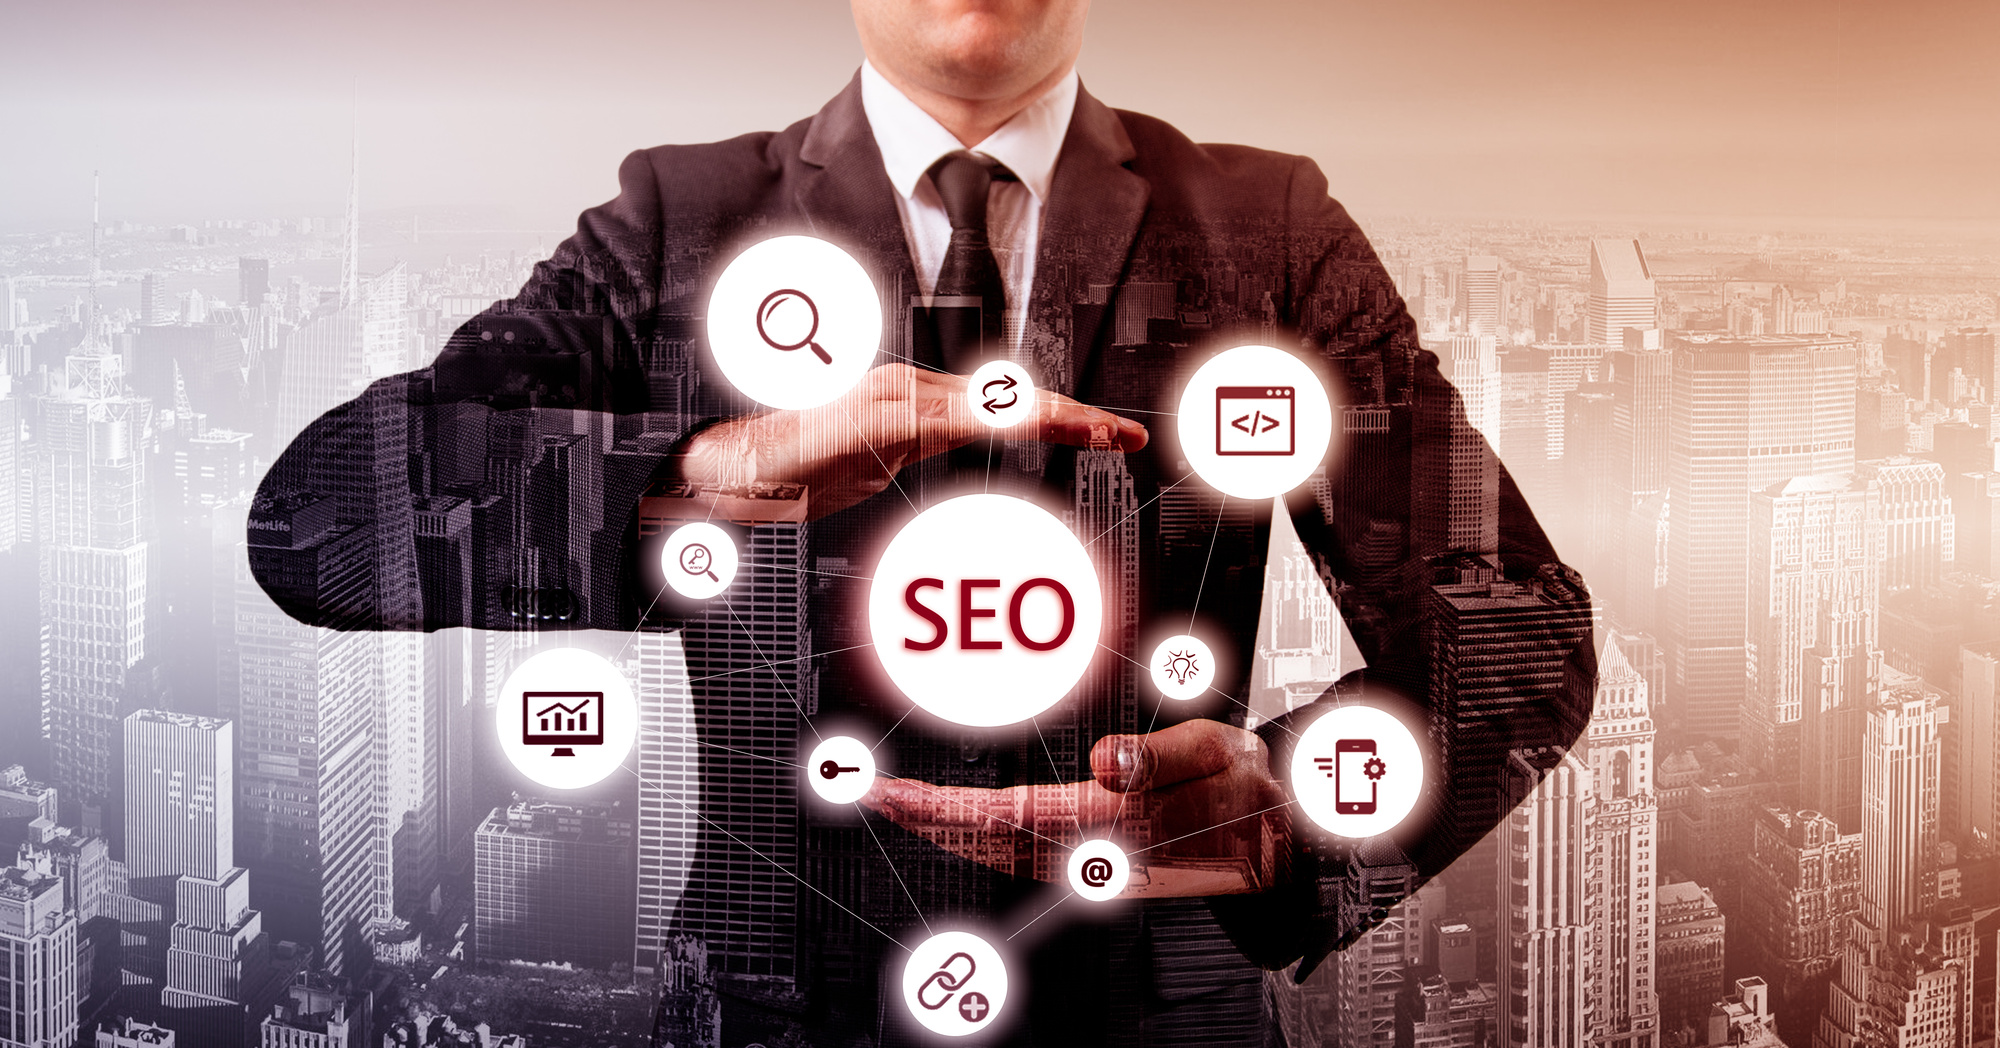 5-Local-SEO-Tips-You-Dont-Want-to-Miss